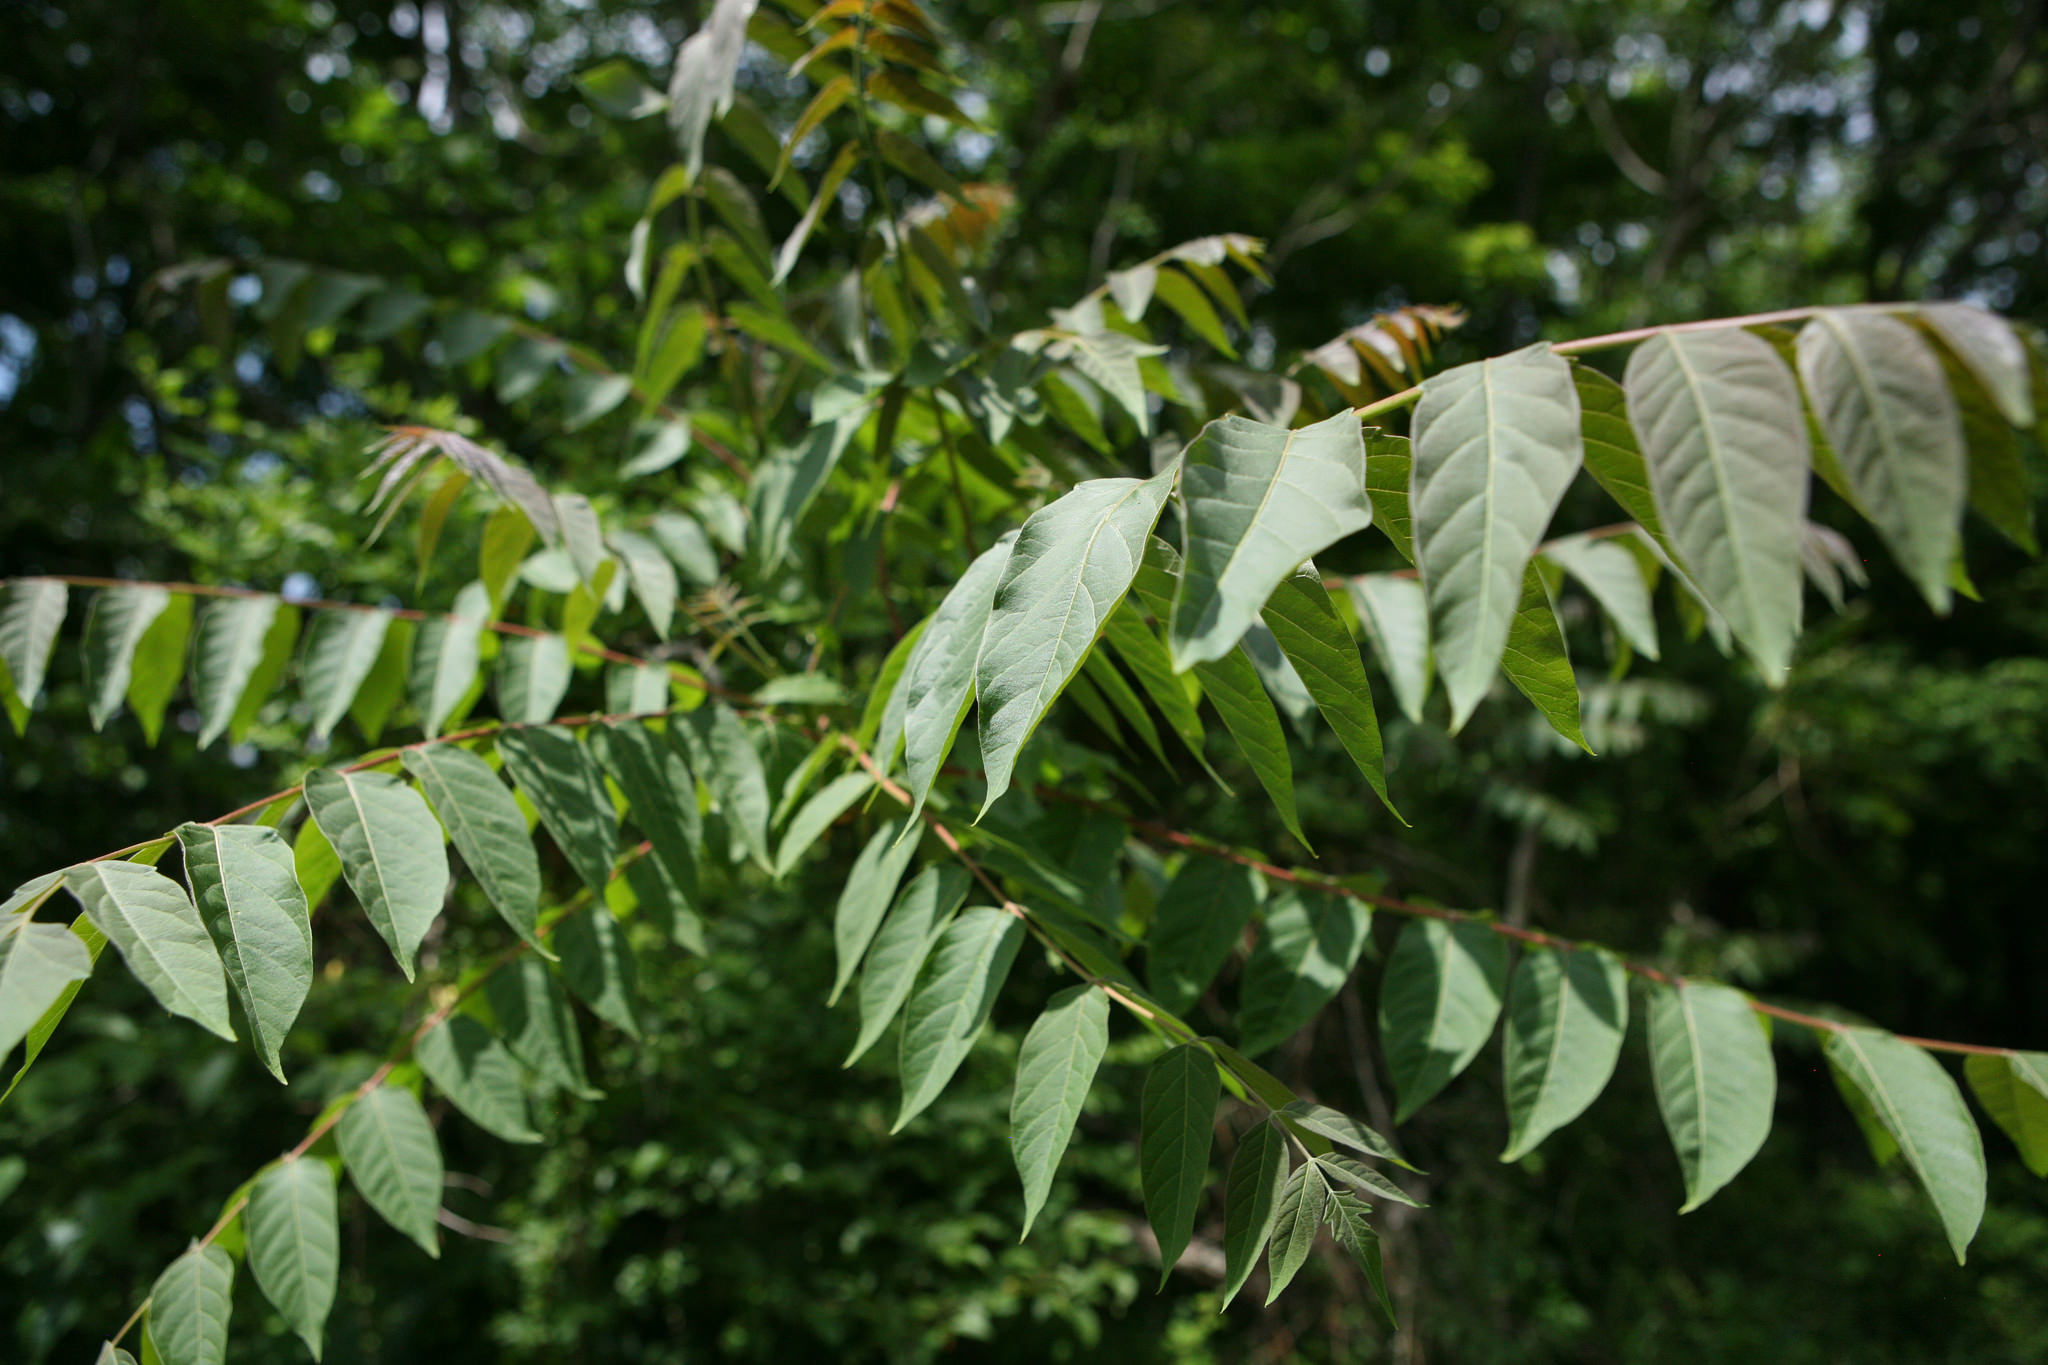 Ailanthus altissima (Tree of Heaven) spreads aggressively via wind blown seed; photo courtesy of Flickr cc/ Wayne National Forest